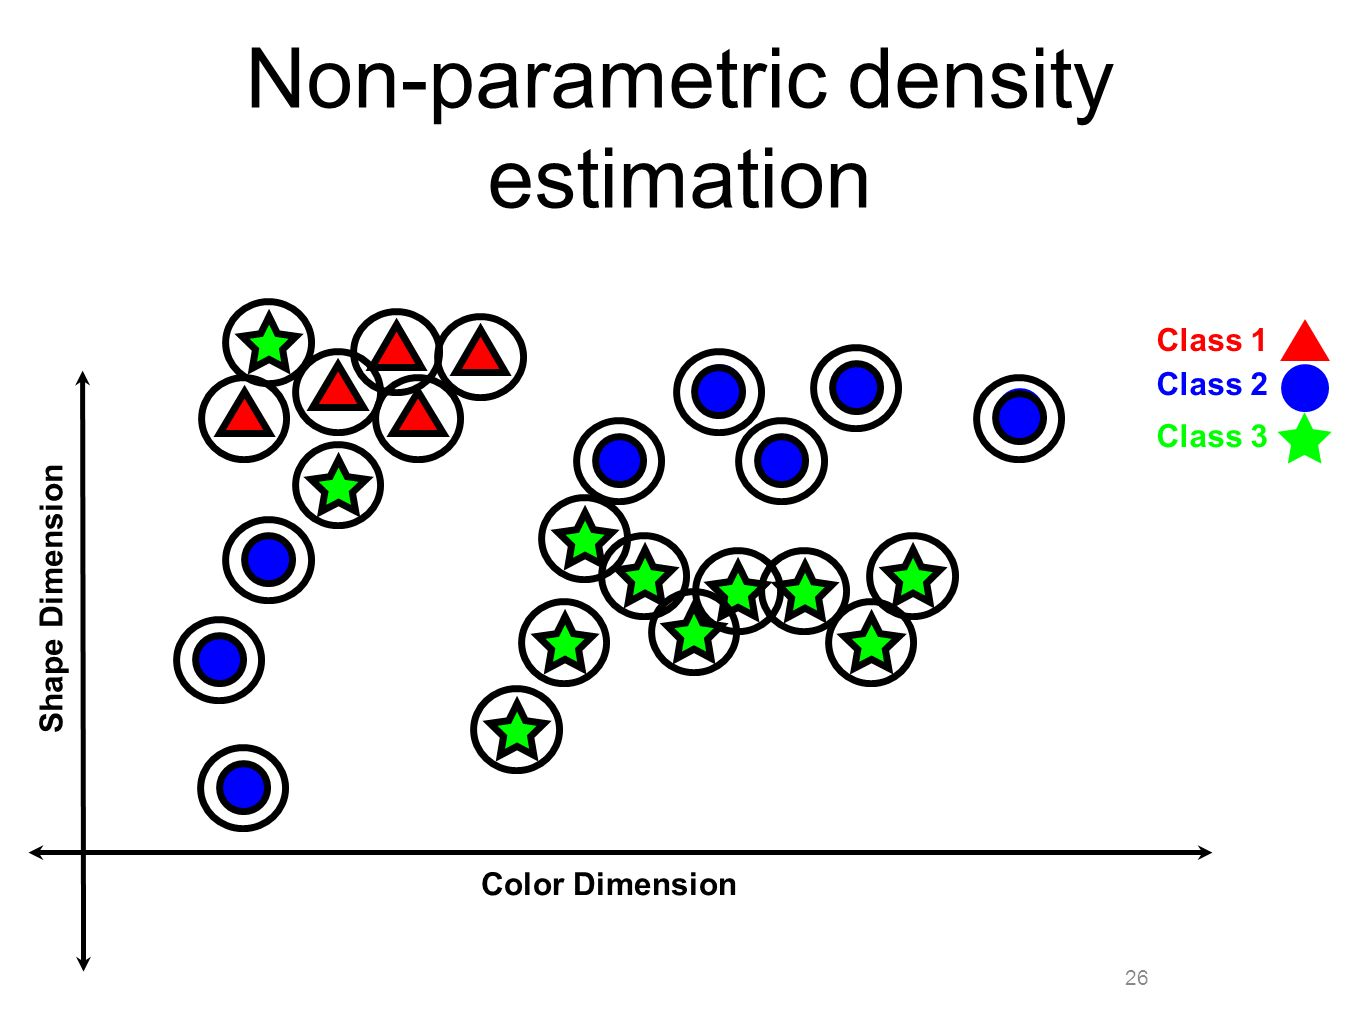 26 Non-parametric density estimation Color Dimension Shape Dimension Class 1 Class 2 Class 3